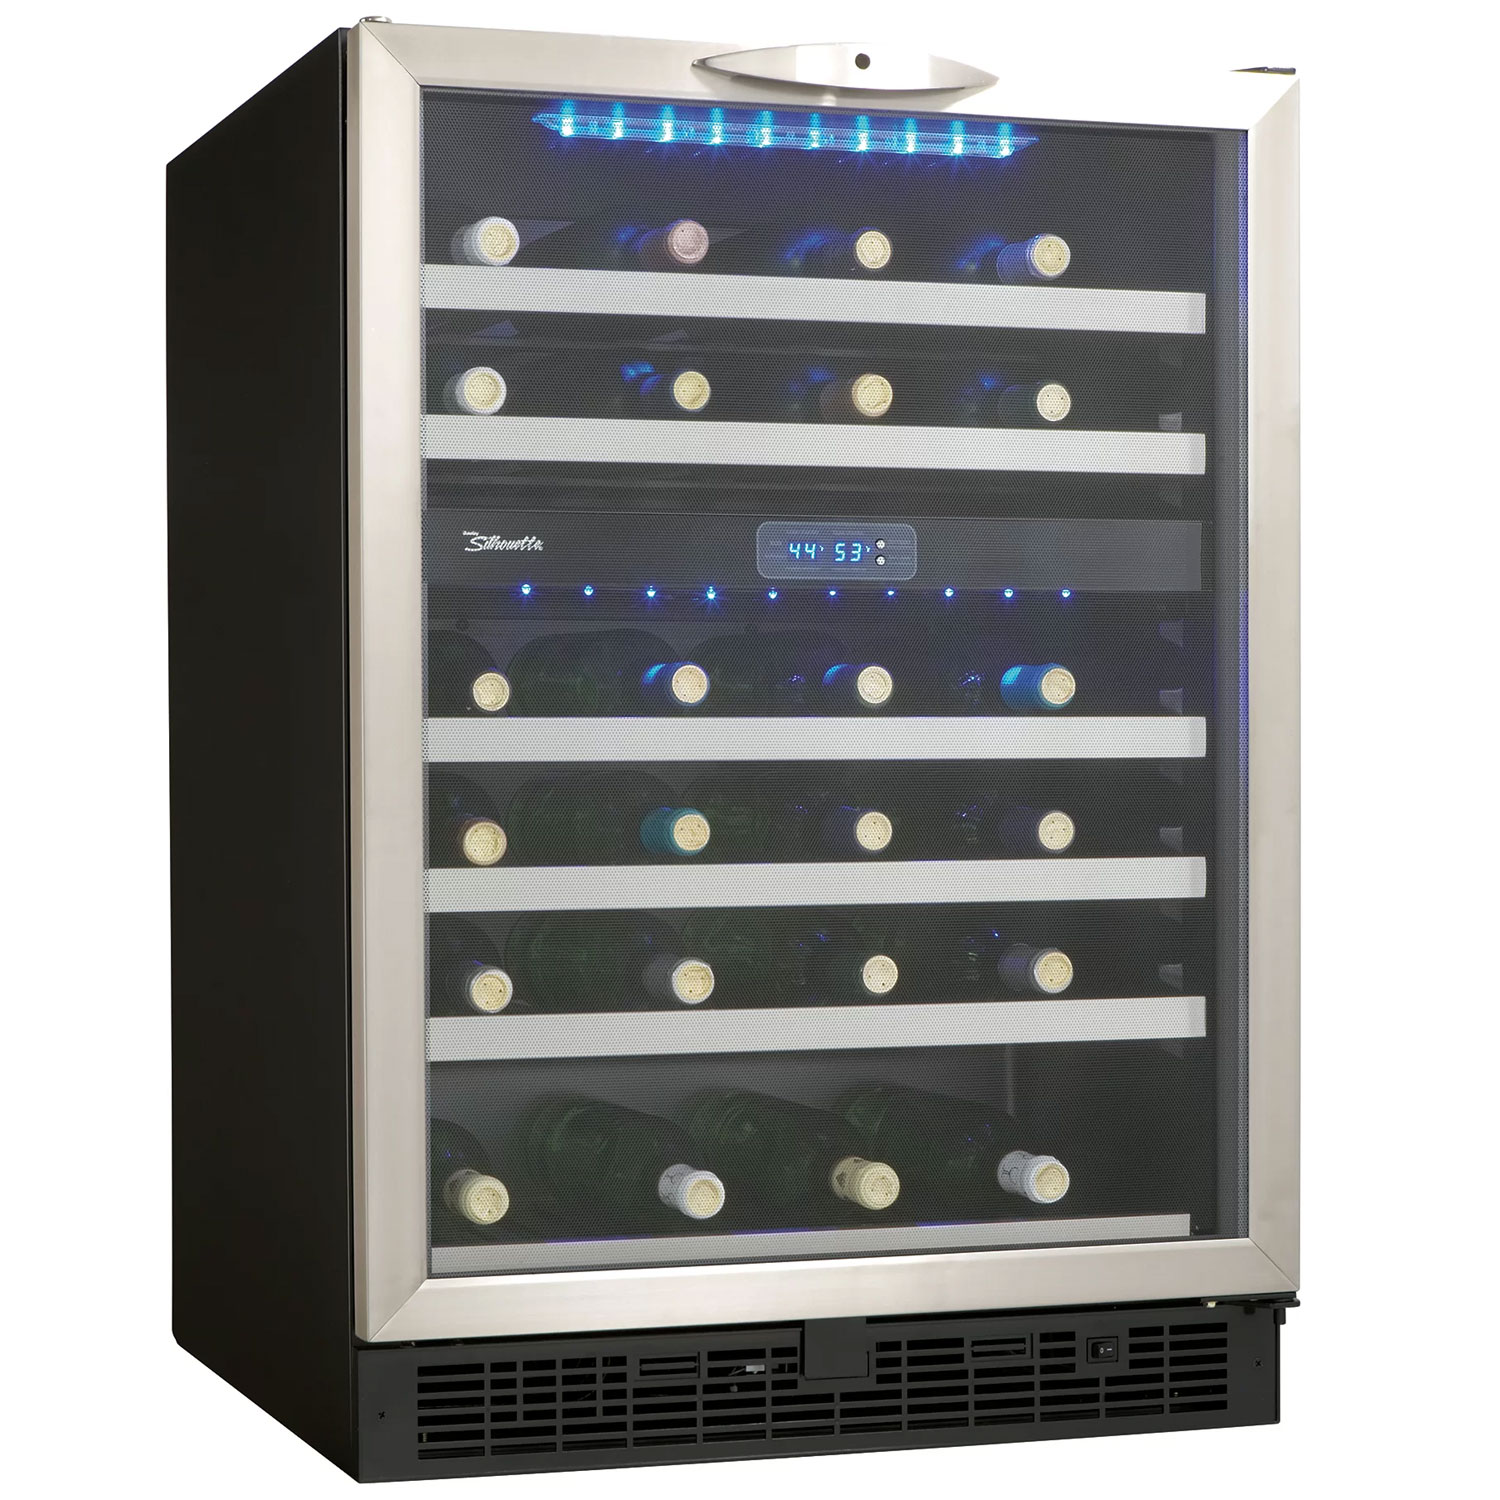 danby dwc518bls wine cooler - Built In Wine Cooler